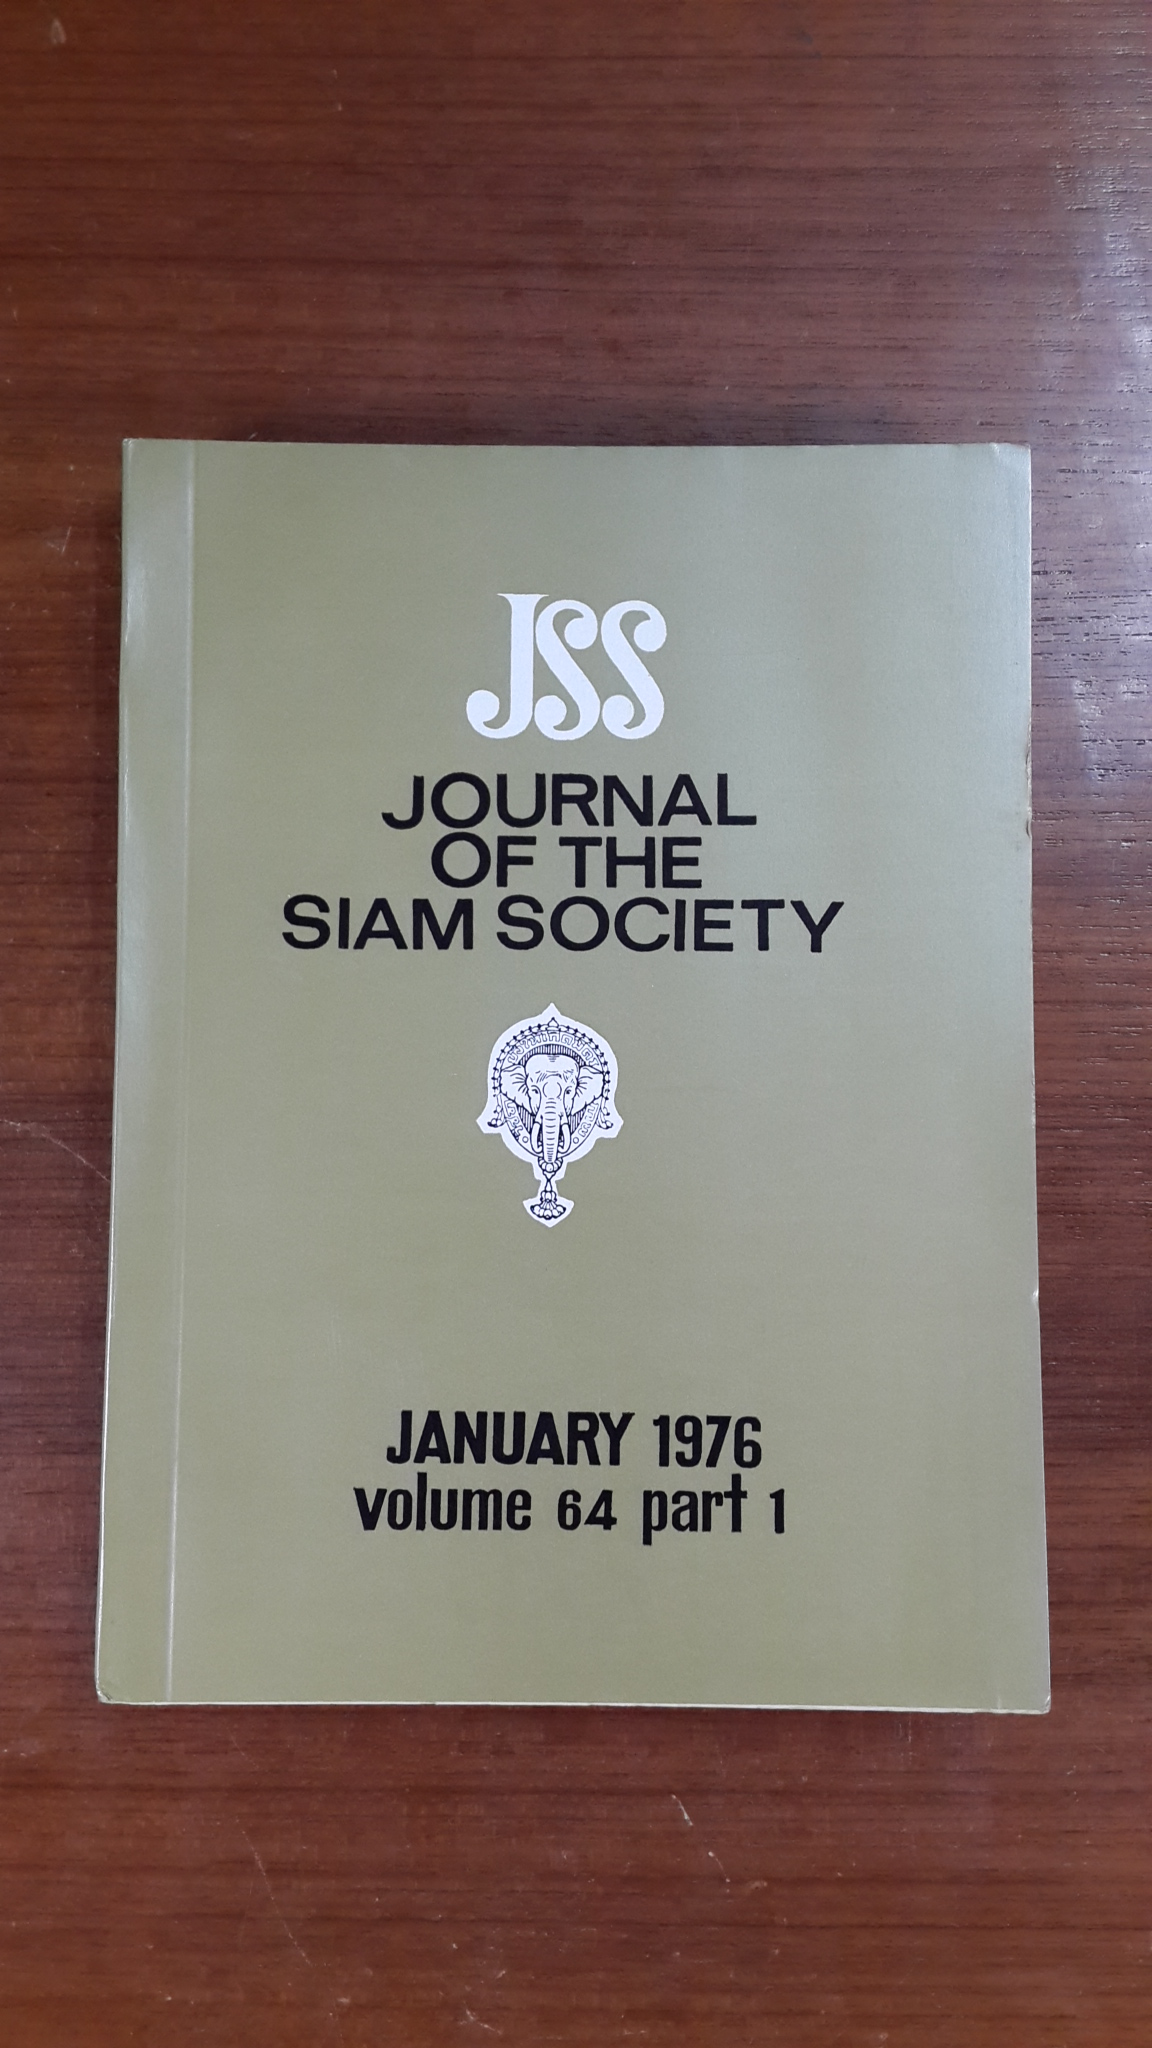 JOURNAL OF THE SIAM SOCIETY : JANUARY 1976 VOL 64 PART 1